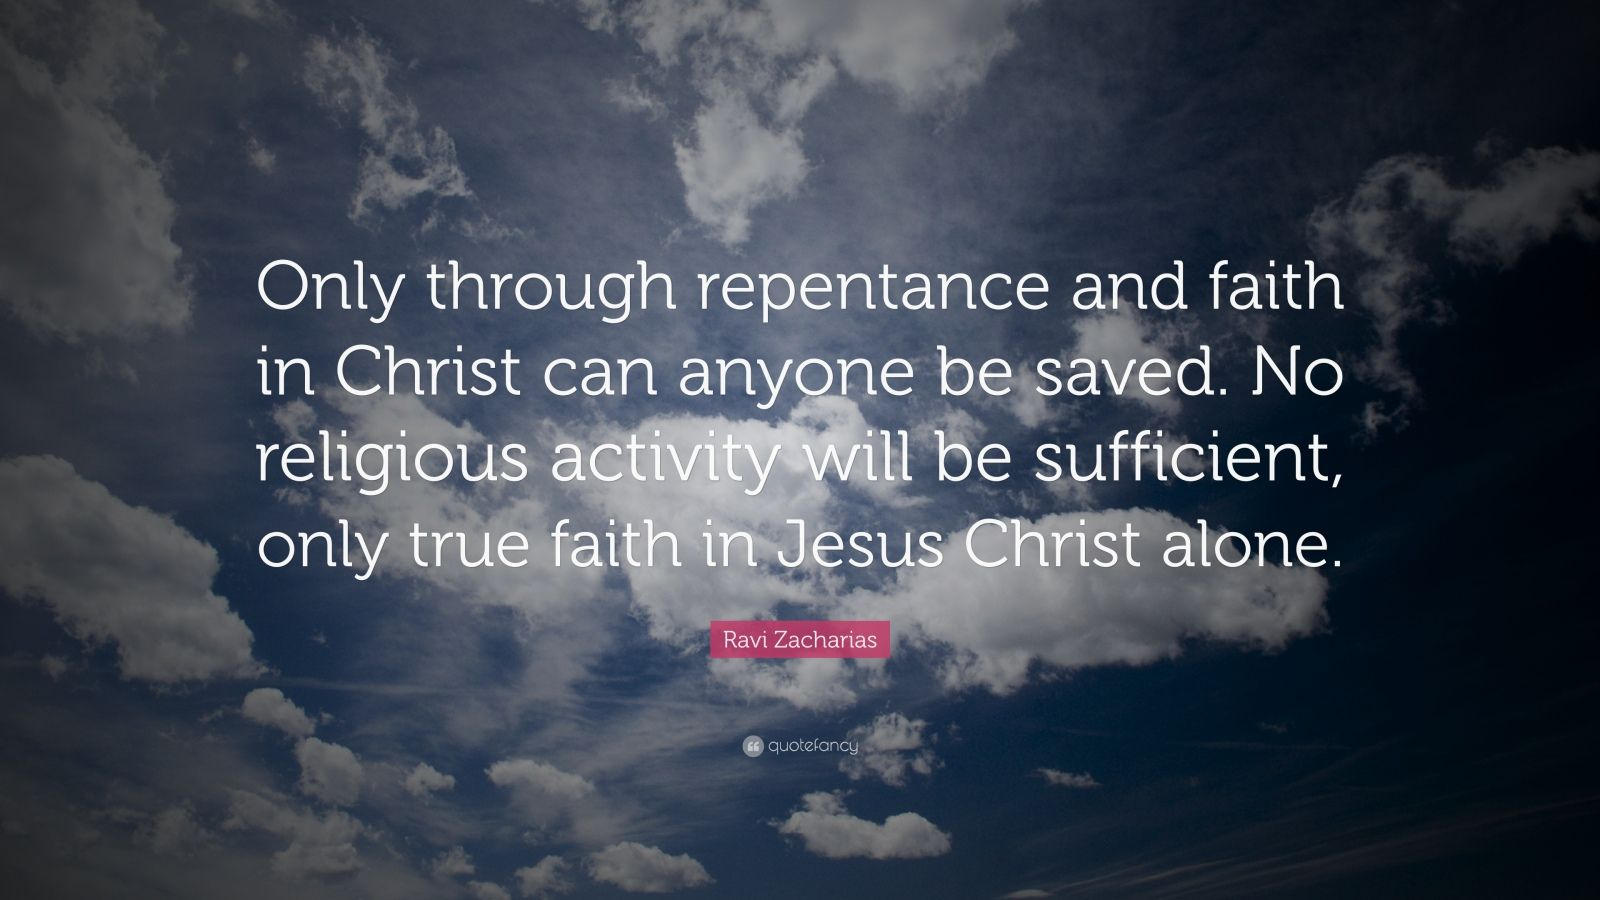 """Ravi Zacharias Quote: """"Only through repentance and faith in Christ can anyone be saved. No religious activity will be sufficient, only true faith in Jesus Christ alone."""""""